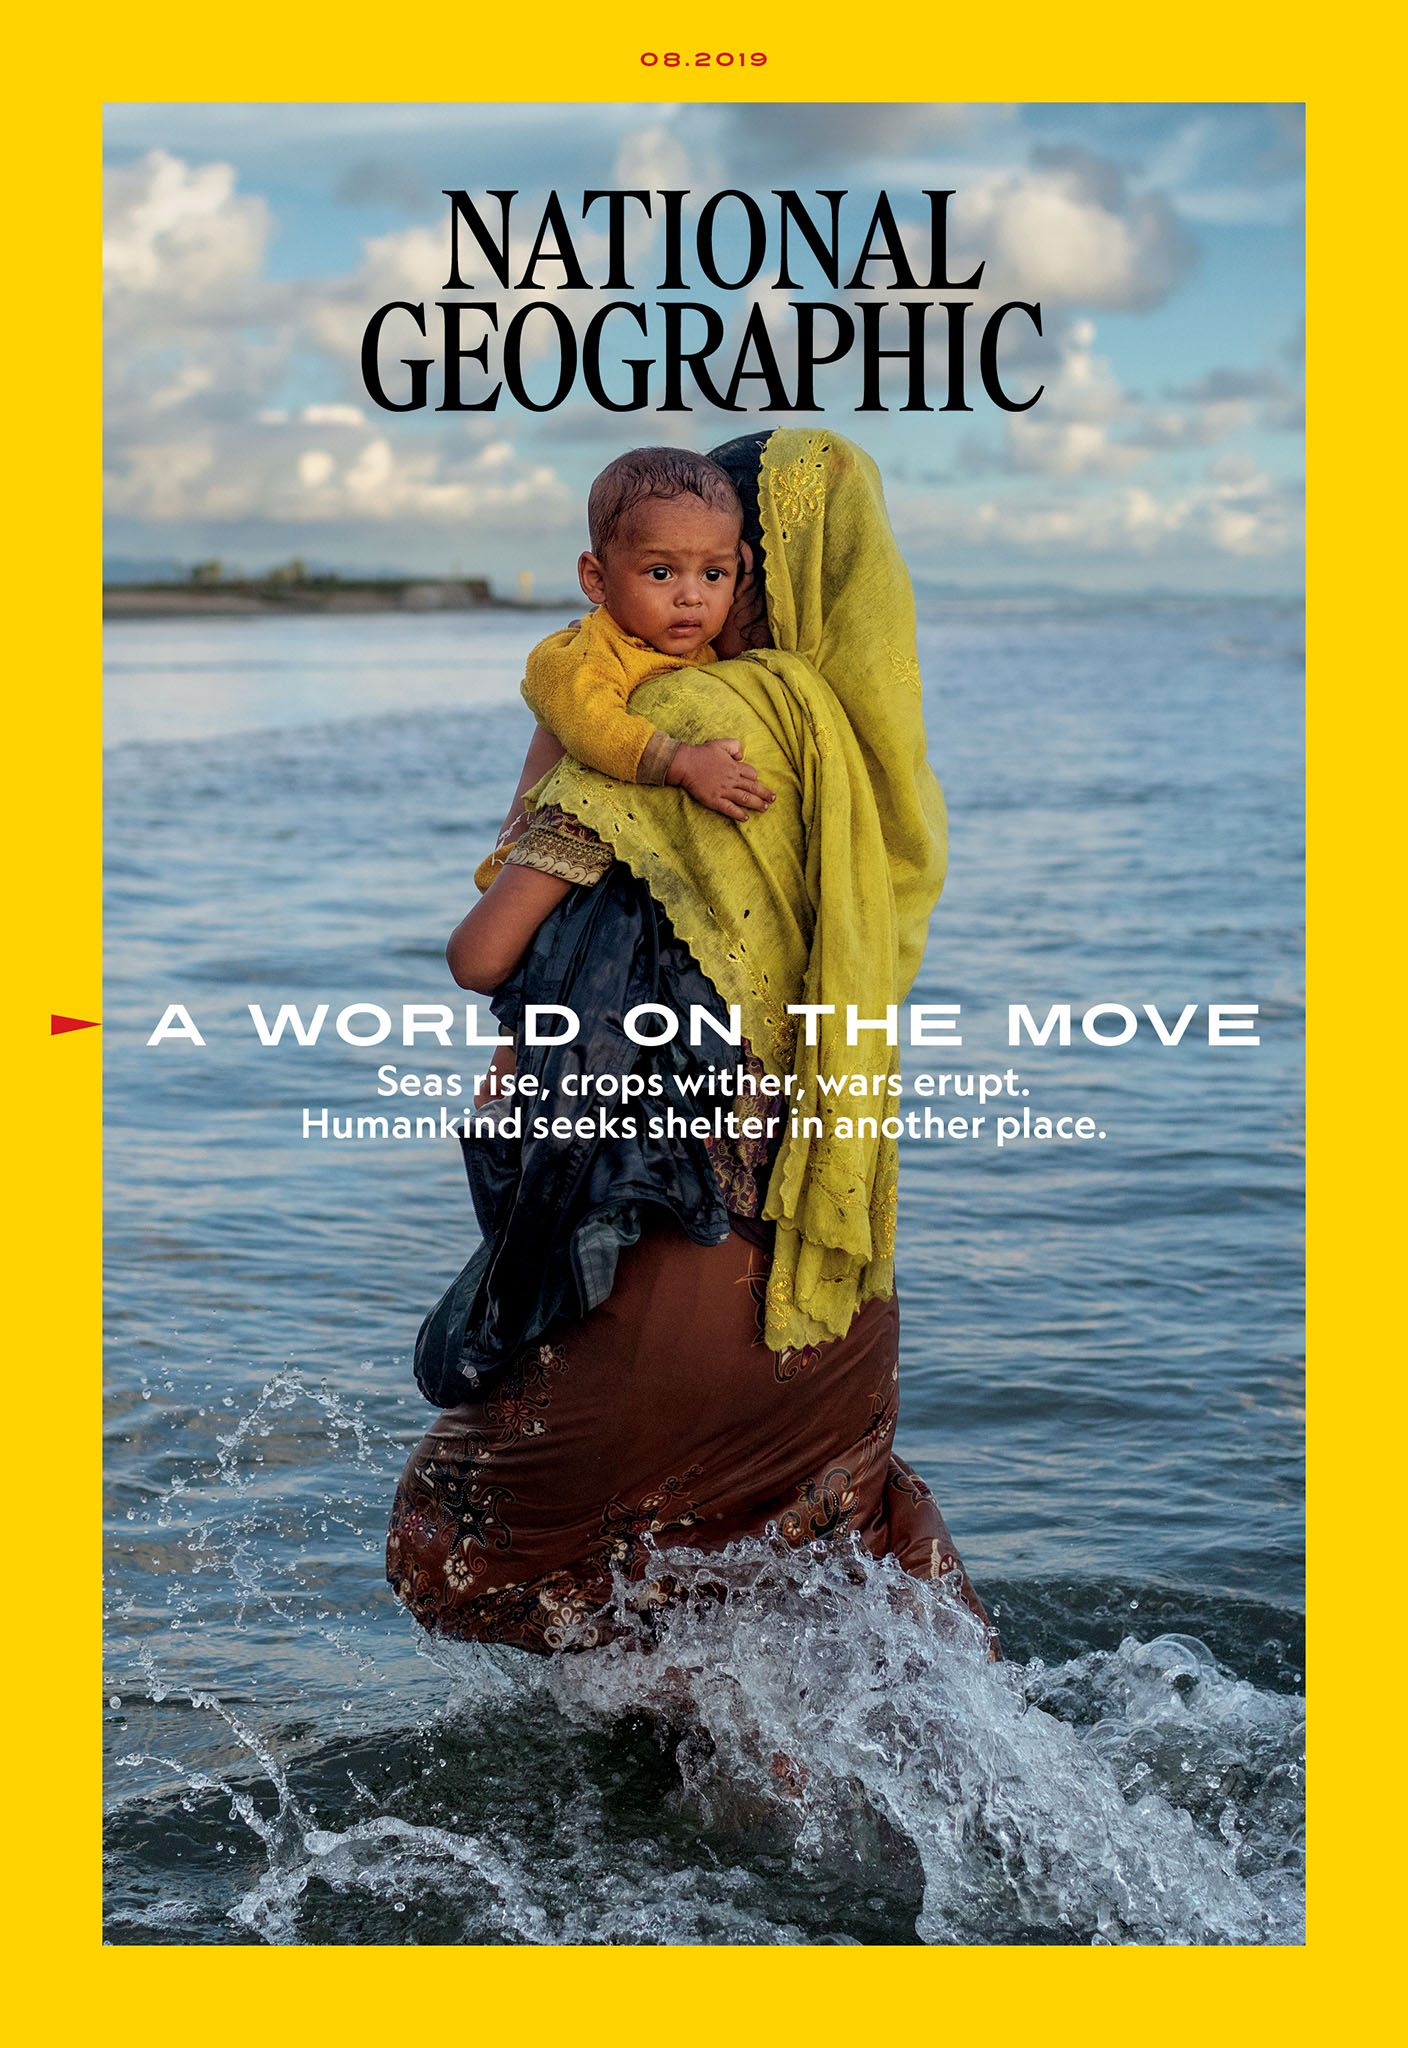 picture of a woman walking in water holding a baby surrounded by a yellow border